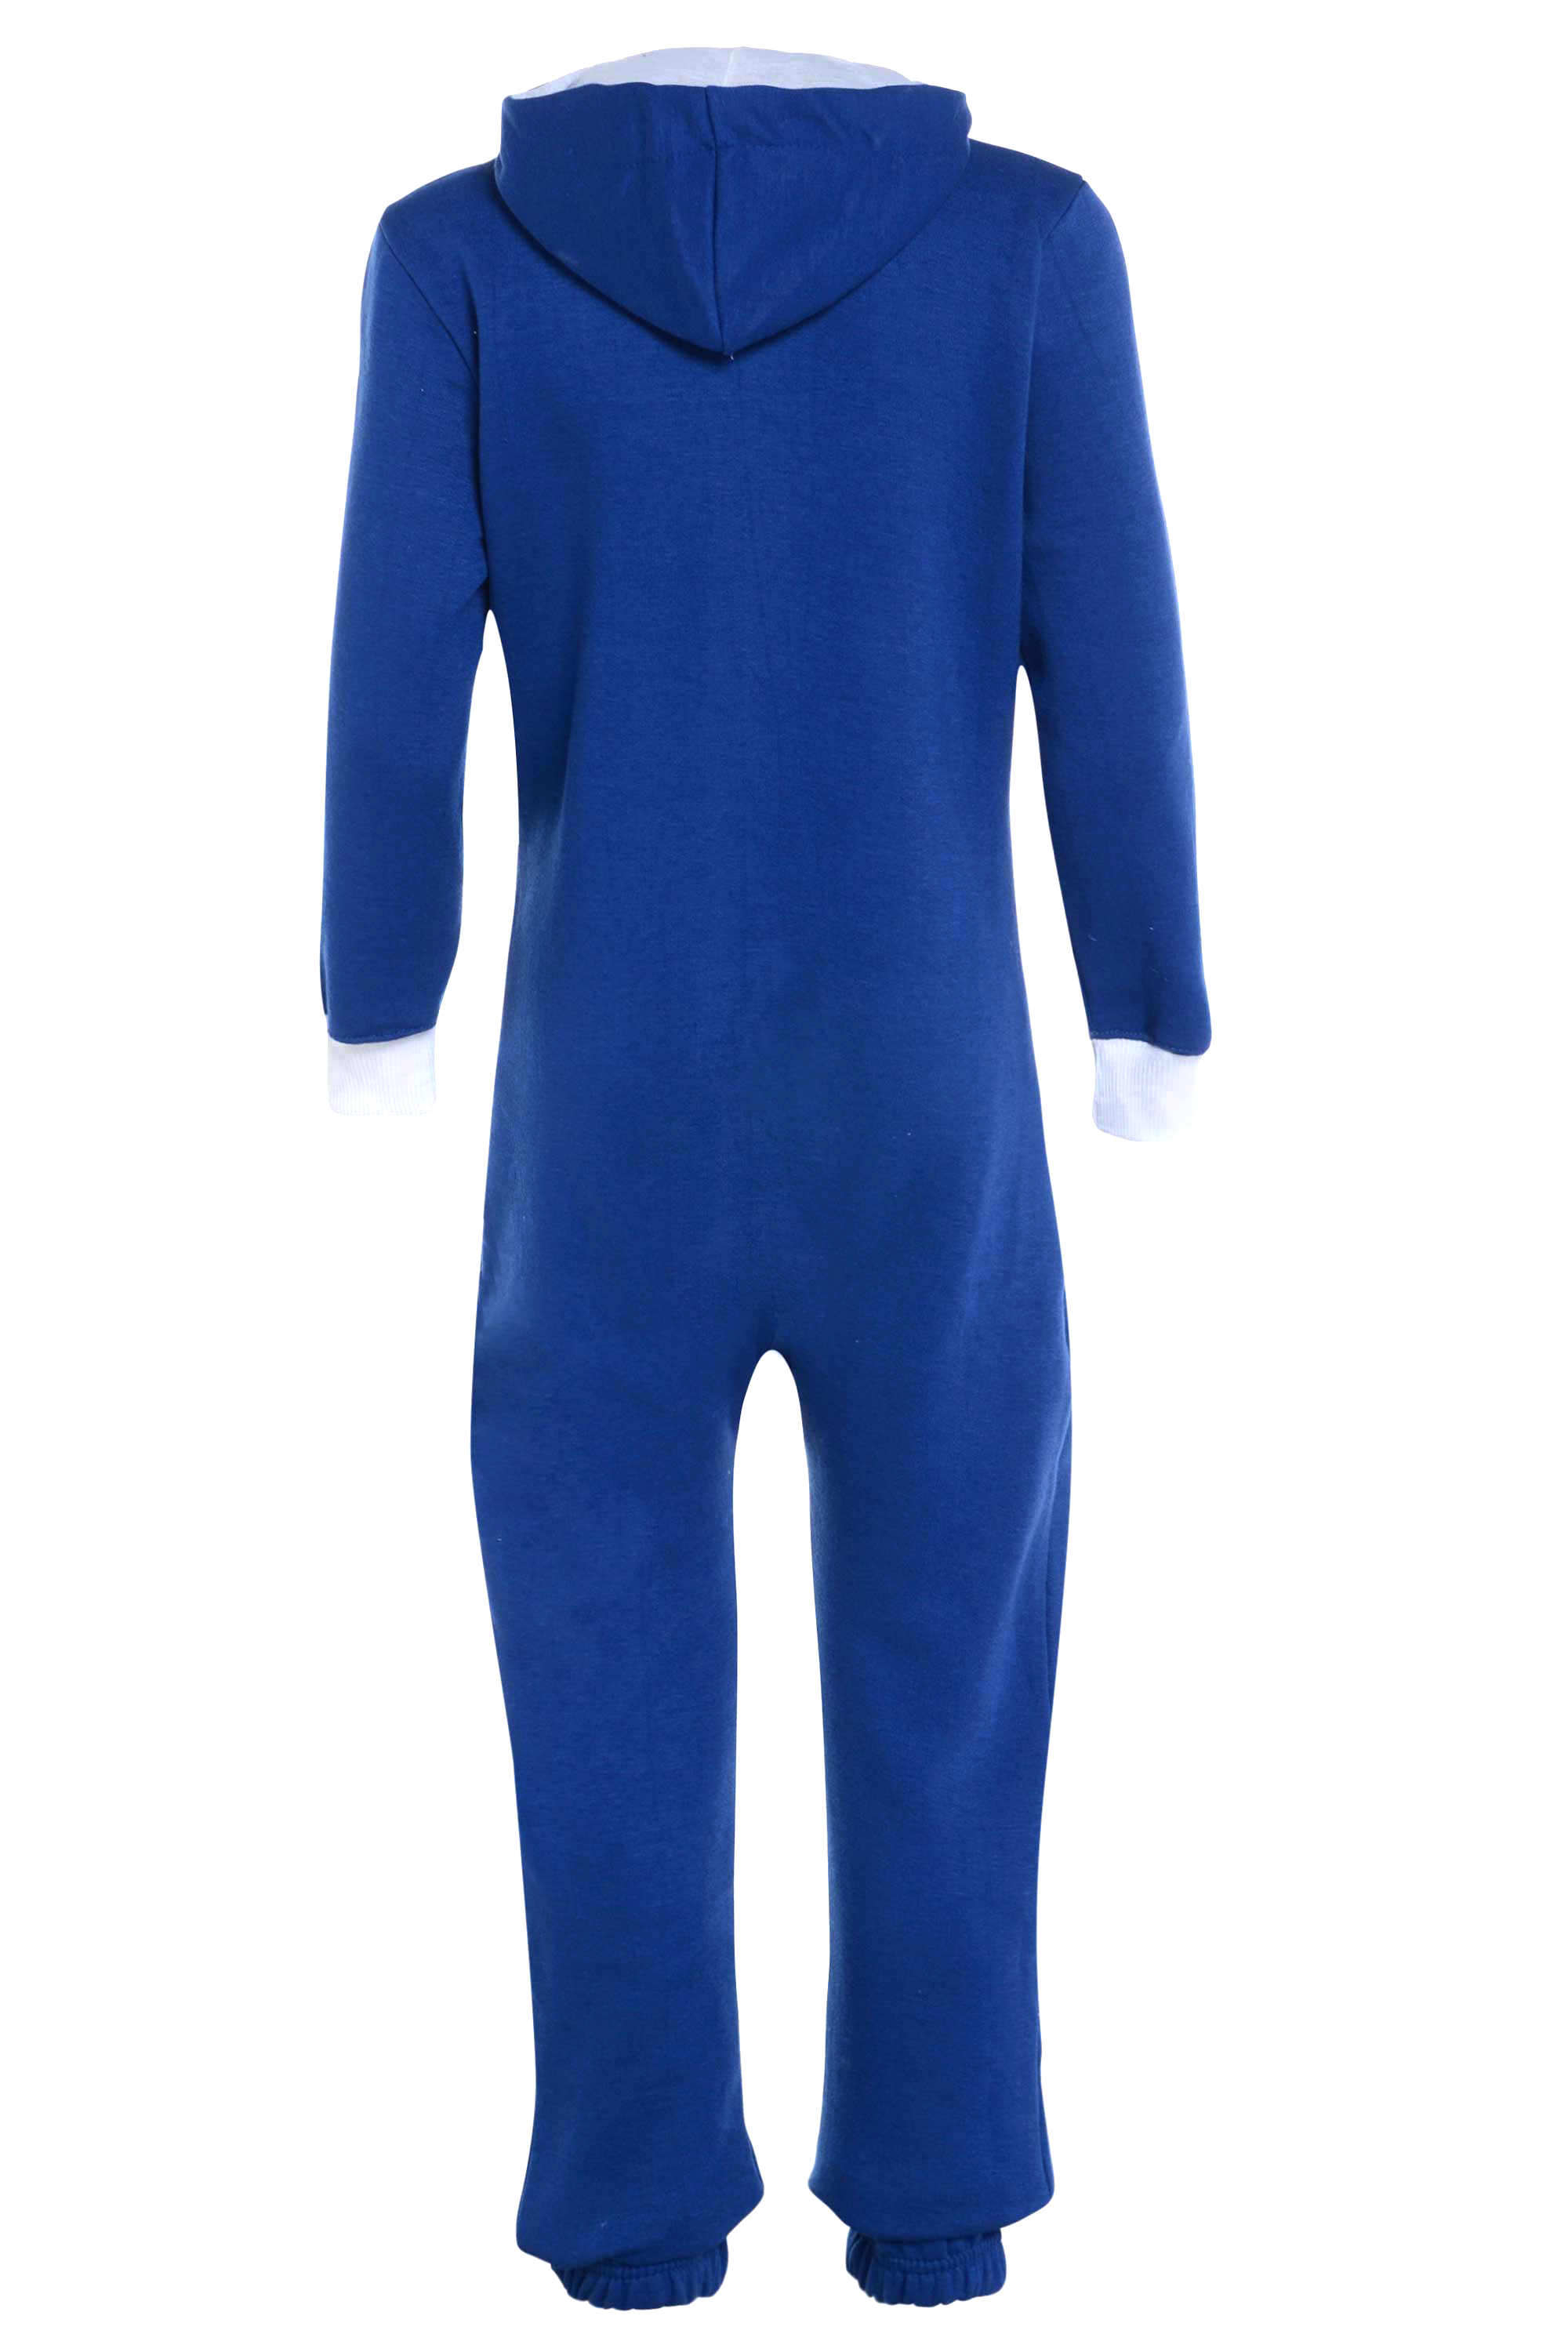 Kids Onesies Listen, as a parent, you need to find more ways to pack extra nap times into your child's day. Their endless energy can be overwhelming when all you want to do is sit on the couch and watch Dr. Phil; and we've got the solution for that.